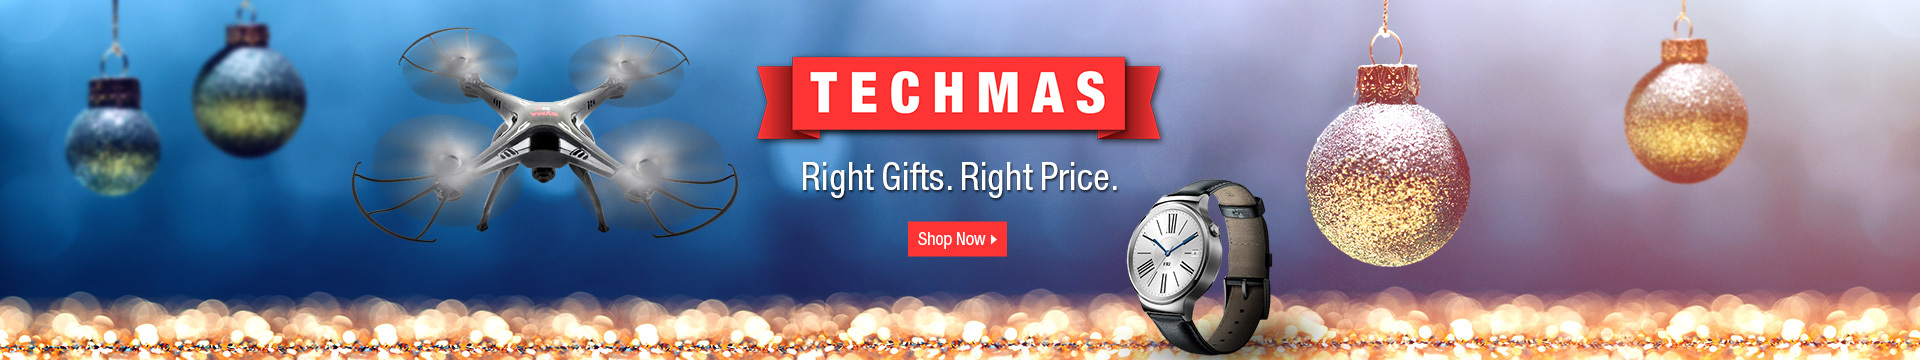 Techmas Right Gifts. Right Price